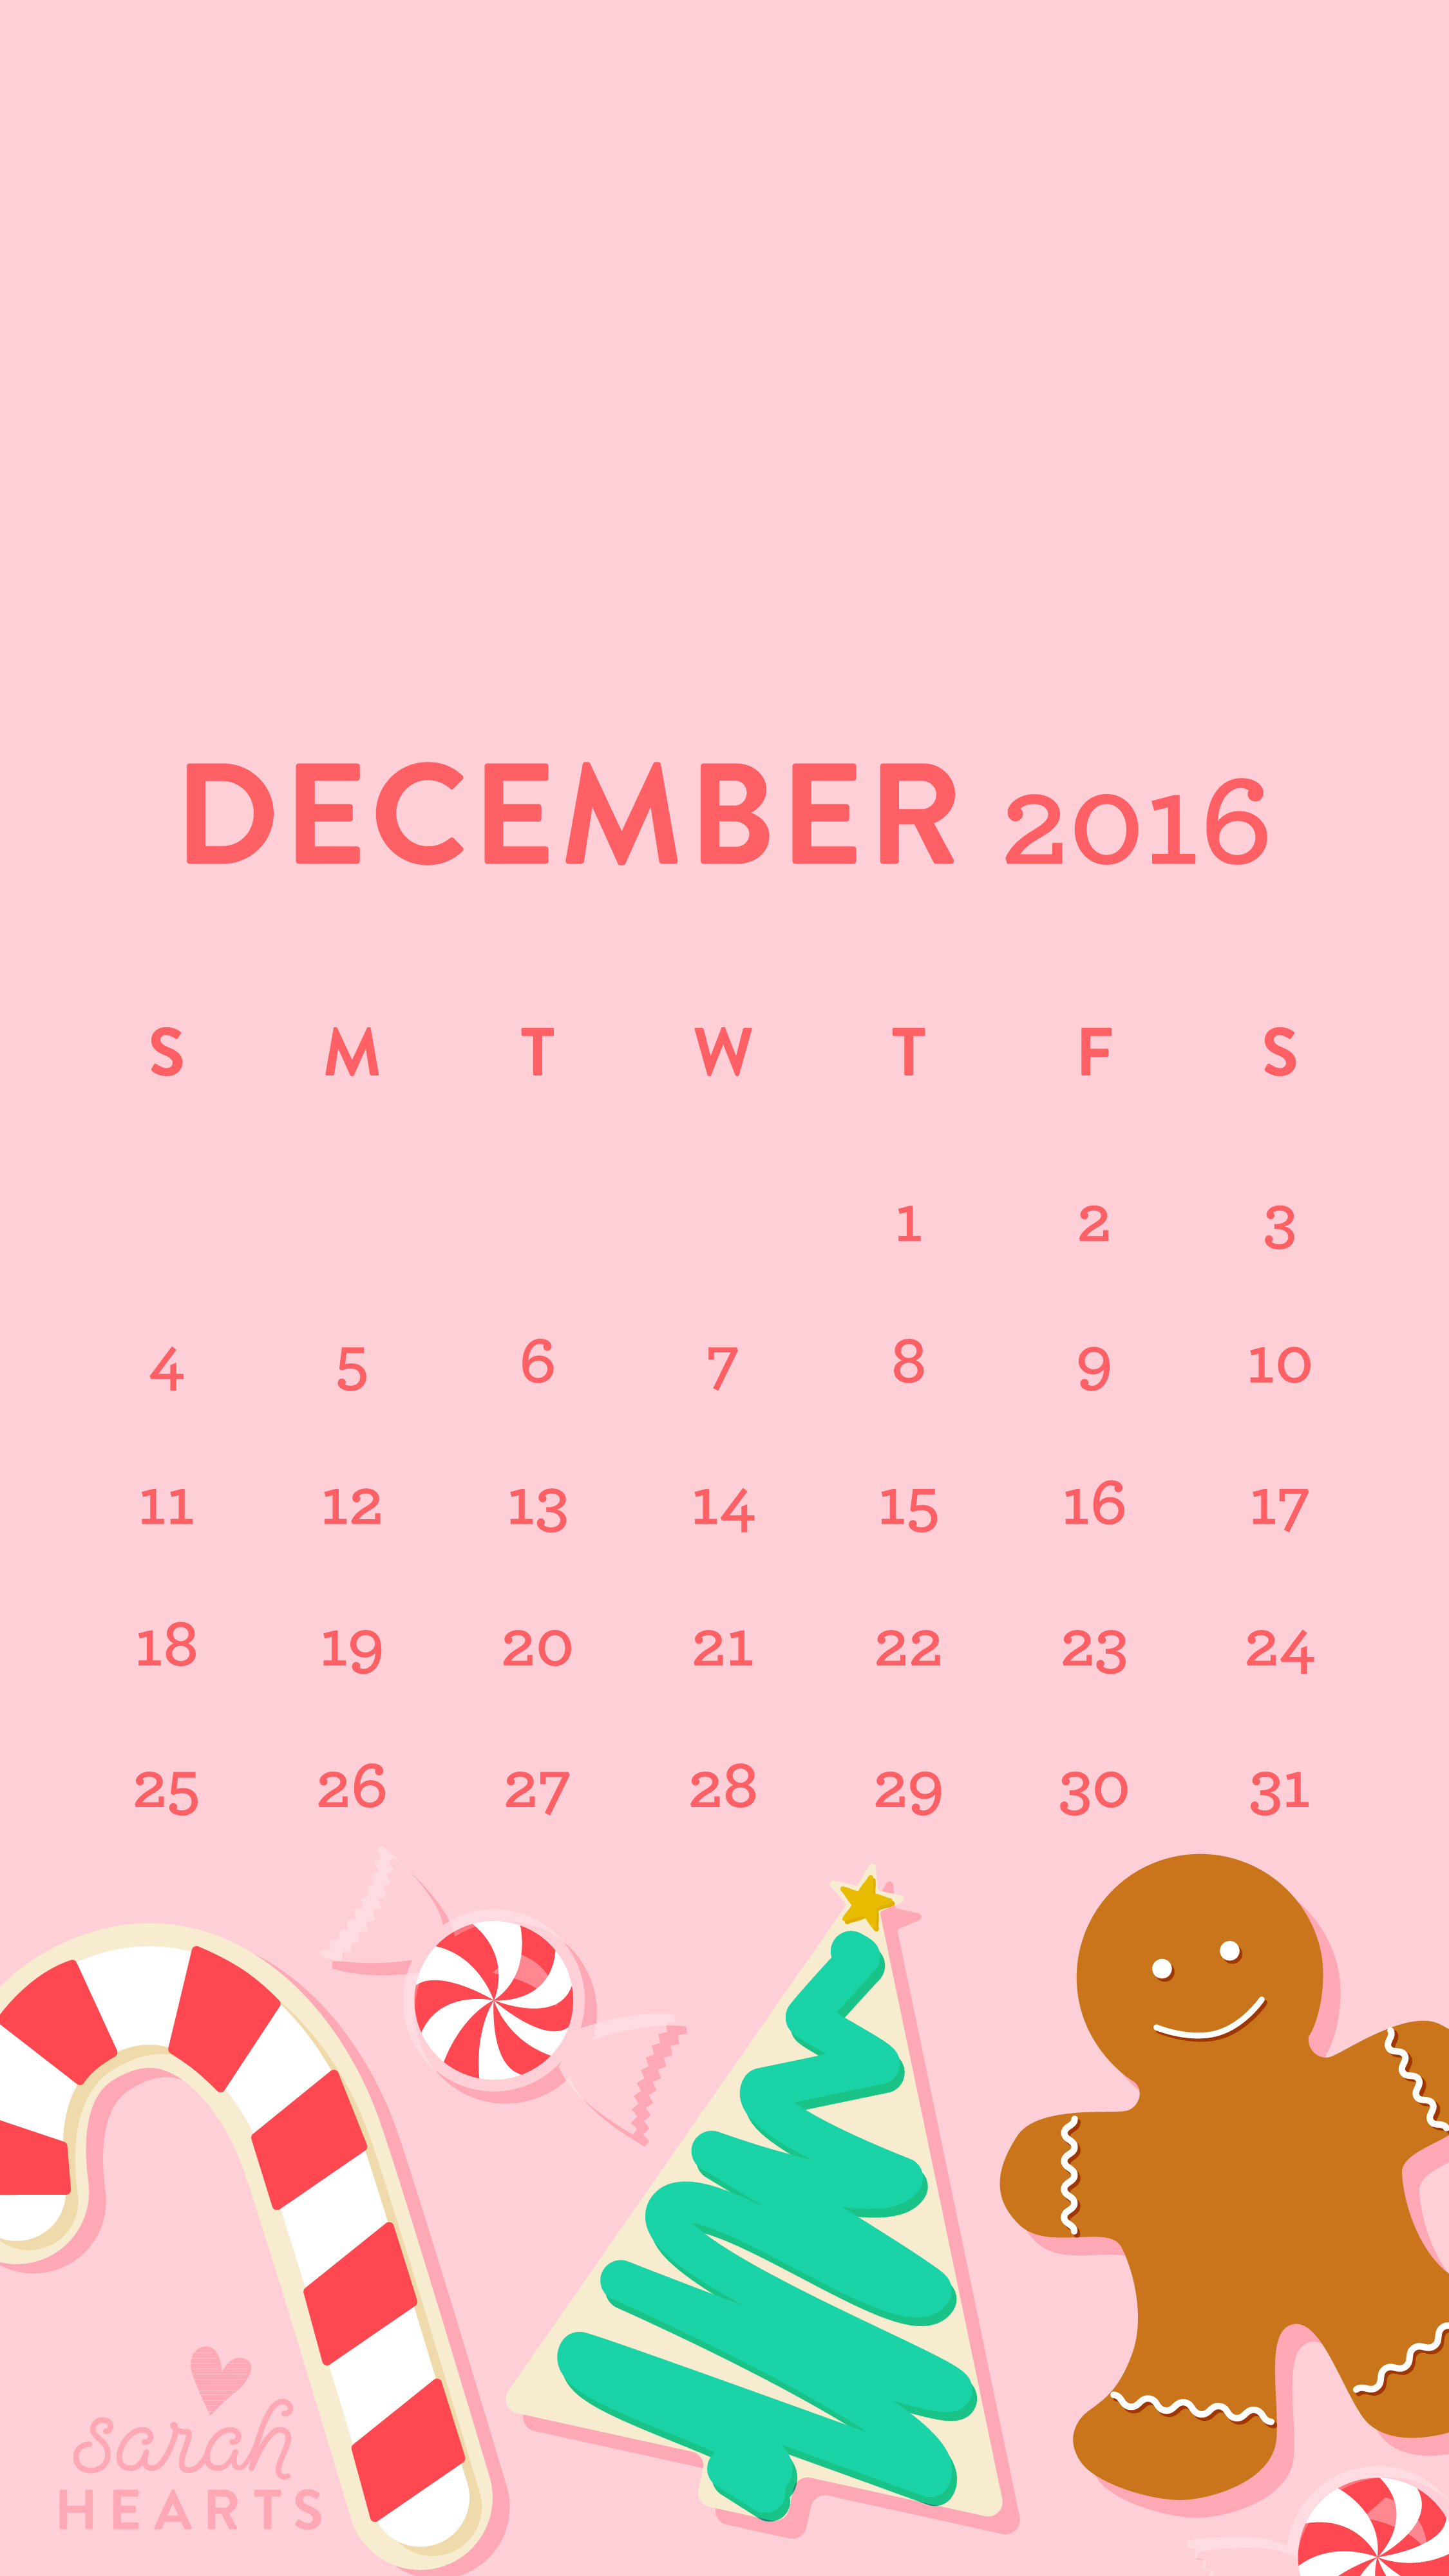 12 2016 wallpaper iphone calendar